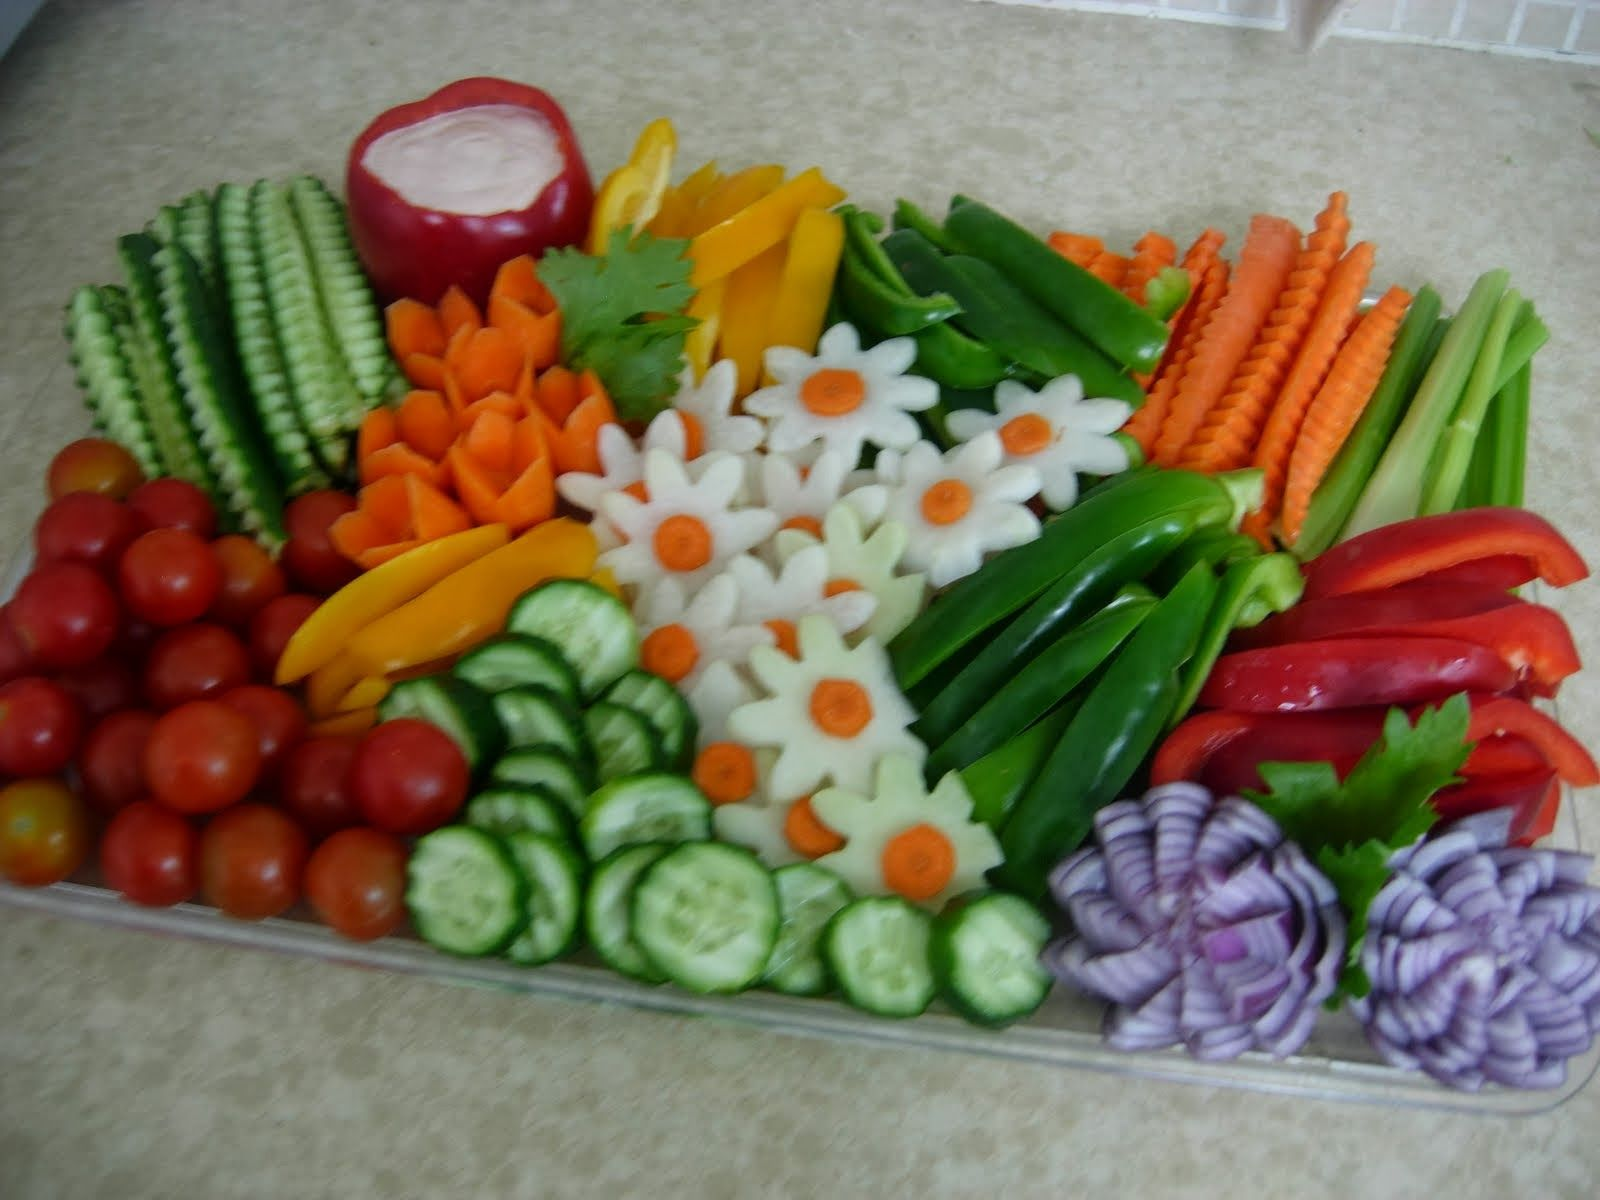 what a lovely way to present vegetables perfect centerpiece